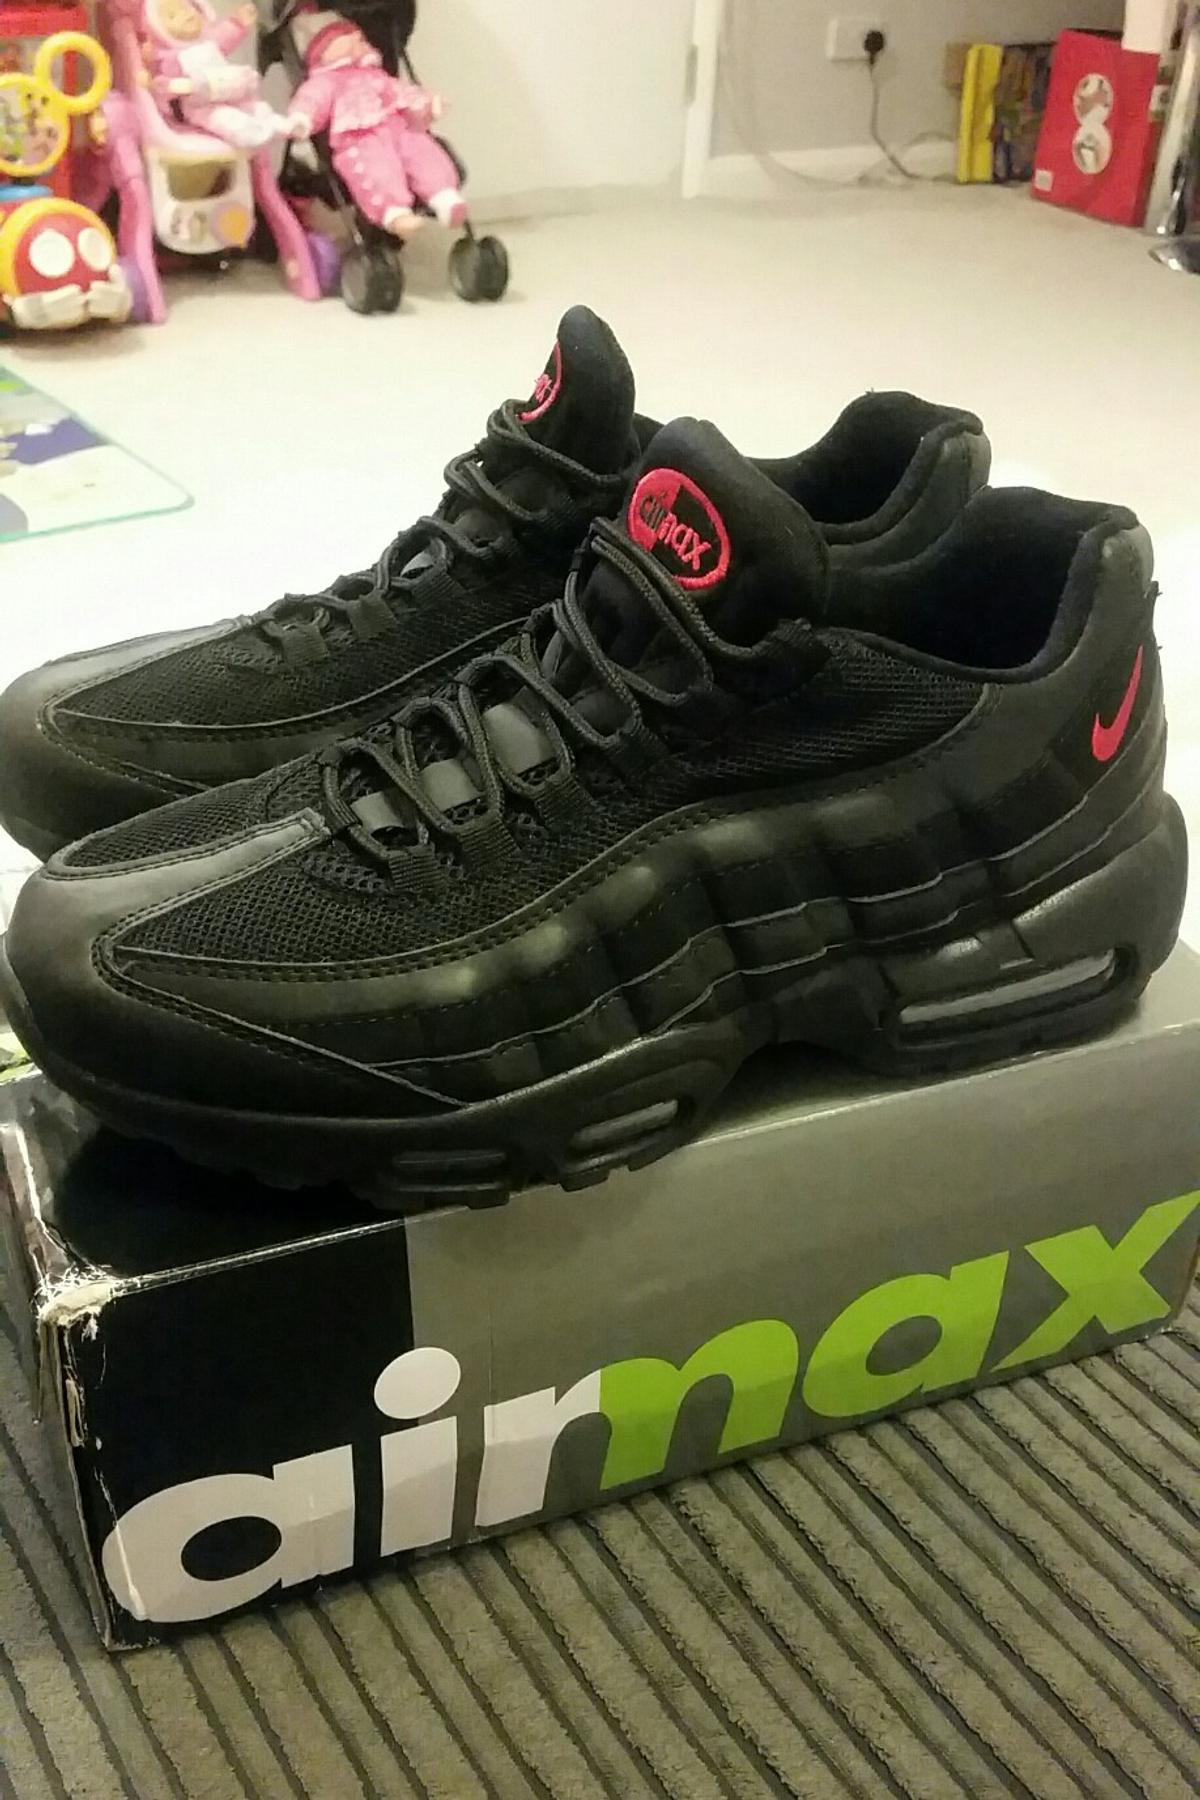 reputable site f78f6 3d1bf Nike air max 95 (110s) in CR2 London for £110.00 for sale ...